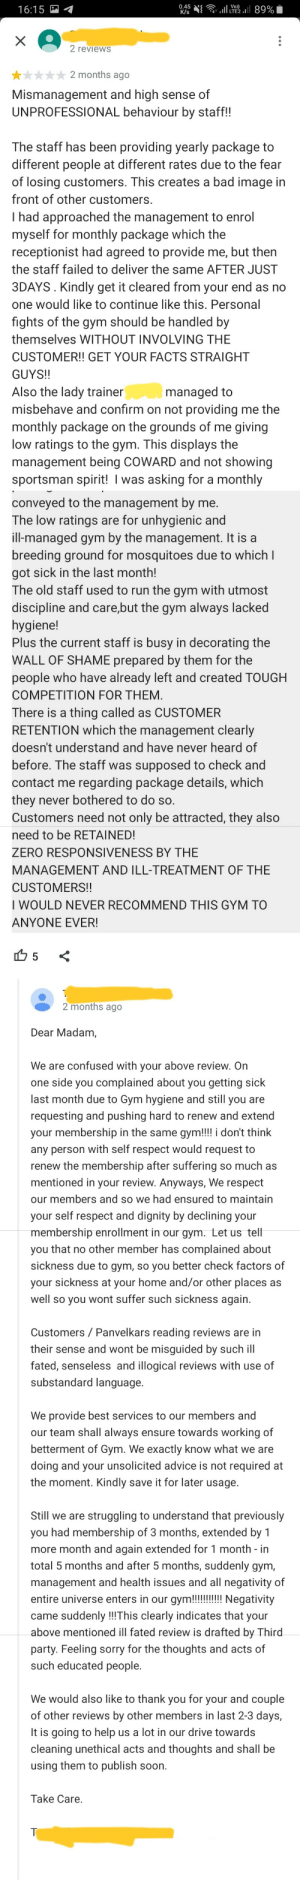 Bullshiting member called out by gym owner (reposted because forgot to remove personal info): 89%  0.45  K/s  16:15  X  2 reviews  2 months ago  Mismanagement and high sense of  UNPROFESSIONAL behaviour by staff!!  The staff has been providing yearly package to  different people at different rates due to the fear  of losing customers. This creates a bad image in  front of other customers.  I had approached the management to enrol  myself for monthly package which the  receptionist had agreed to provide me, but then  the staff failed to deliver the same AFTER JUST  3DAYS. Kindly get it cleared from your end as no  one would like to continue like this. Personal  fights of the gym should be handled by  themselves WITHOUT INVOLVING THE  CUSTOMER!! GET YOUR FACTS STRAIGHT  GUYS!!  Also the lady trainer  misbehave and confirm on not providing me the  managed to  monthly package on the grounds of me giving  low ratings to the gym. This displays the  management being COWARD and not showing  sportsman spirit! I was asking for a monthly  conveyed to the management by  The low ratings are for unhygienic and  ill-managed gym by the management. It is a  breeding ground for mosquitoes due to which I  me.  got sick in the last month!  The old staff used to run the gym with utmost  discipline and care,but the gym always lacked  hygiene!  Plus the current staff is busy in decorating the  WALL OF SHAME prepared by them for the  people who have already left and created TOUGH  COMPETITION FOR THEM  There is a thing called as CUSTOMER  RETENTION which the management clearly  doesn't understand and have never heard of  before. The staff was supposed to check and  contact me regarding package details, which  they never bothered to do so.  Customers need not only be attracted, they also  need to be RETAINED!  ZERO RESPONSIVENESS BY THE  MANAGEMENT AND ILL-TREATMENT OF THE  CUSTOMERS!!  WOULD NEVER RECOMMEND THIS GYM TO  ANYONE EVER!  5  2 months ago  Dear Madam,  We are confused with your 